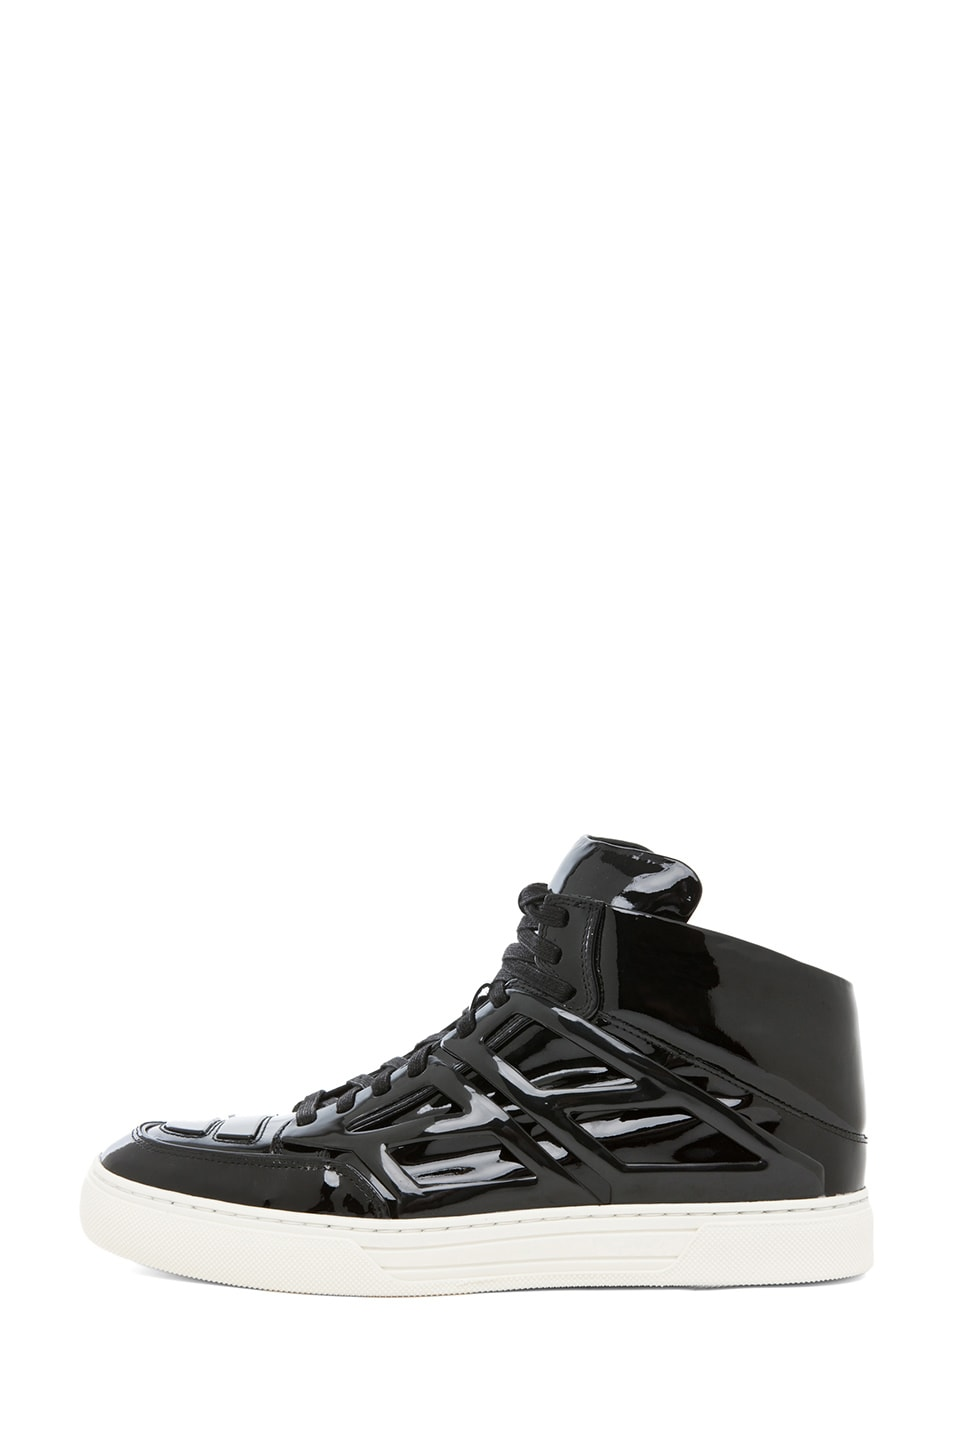 Image 1 of Alejandro Ingelmo Tron Patent Leather Sneaker in Black